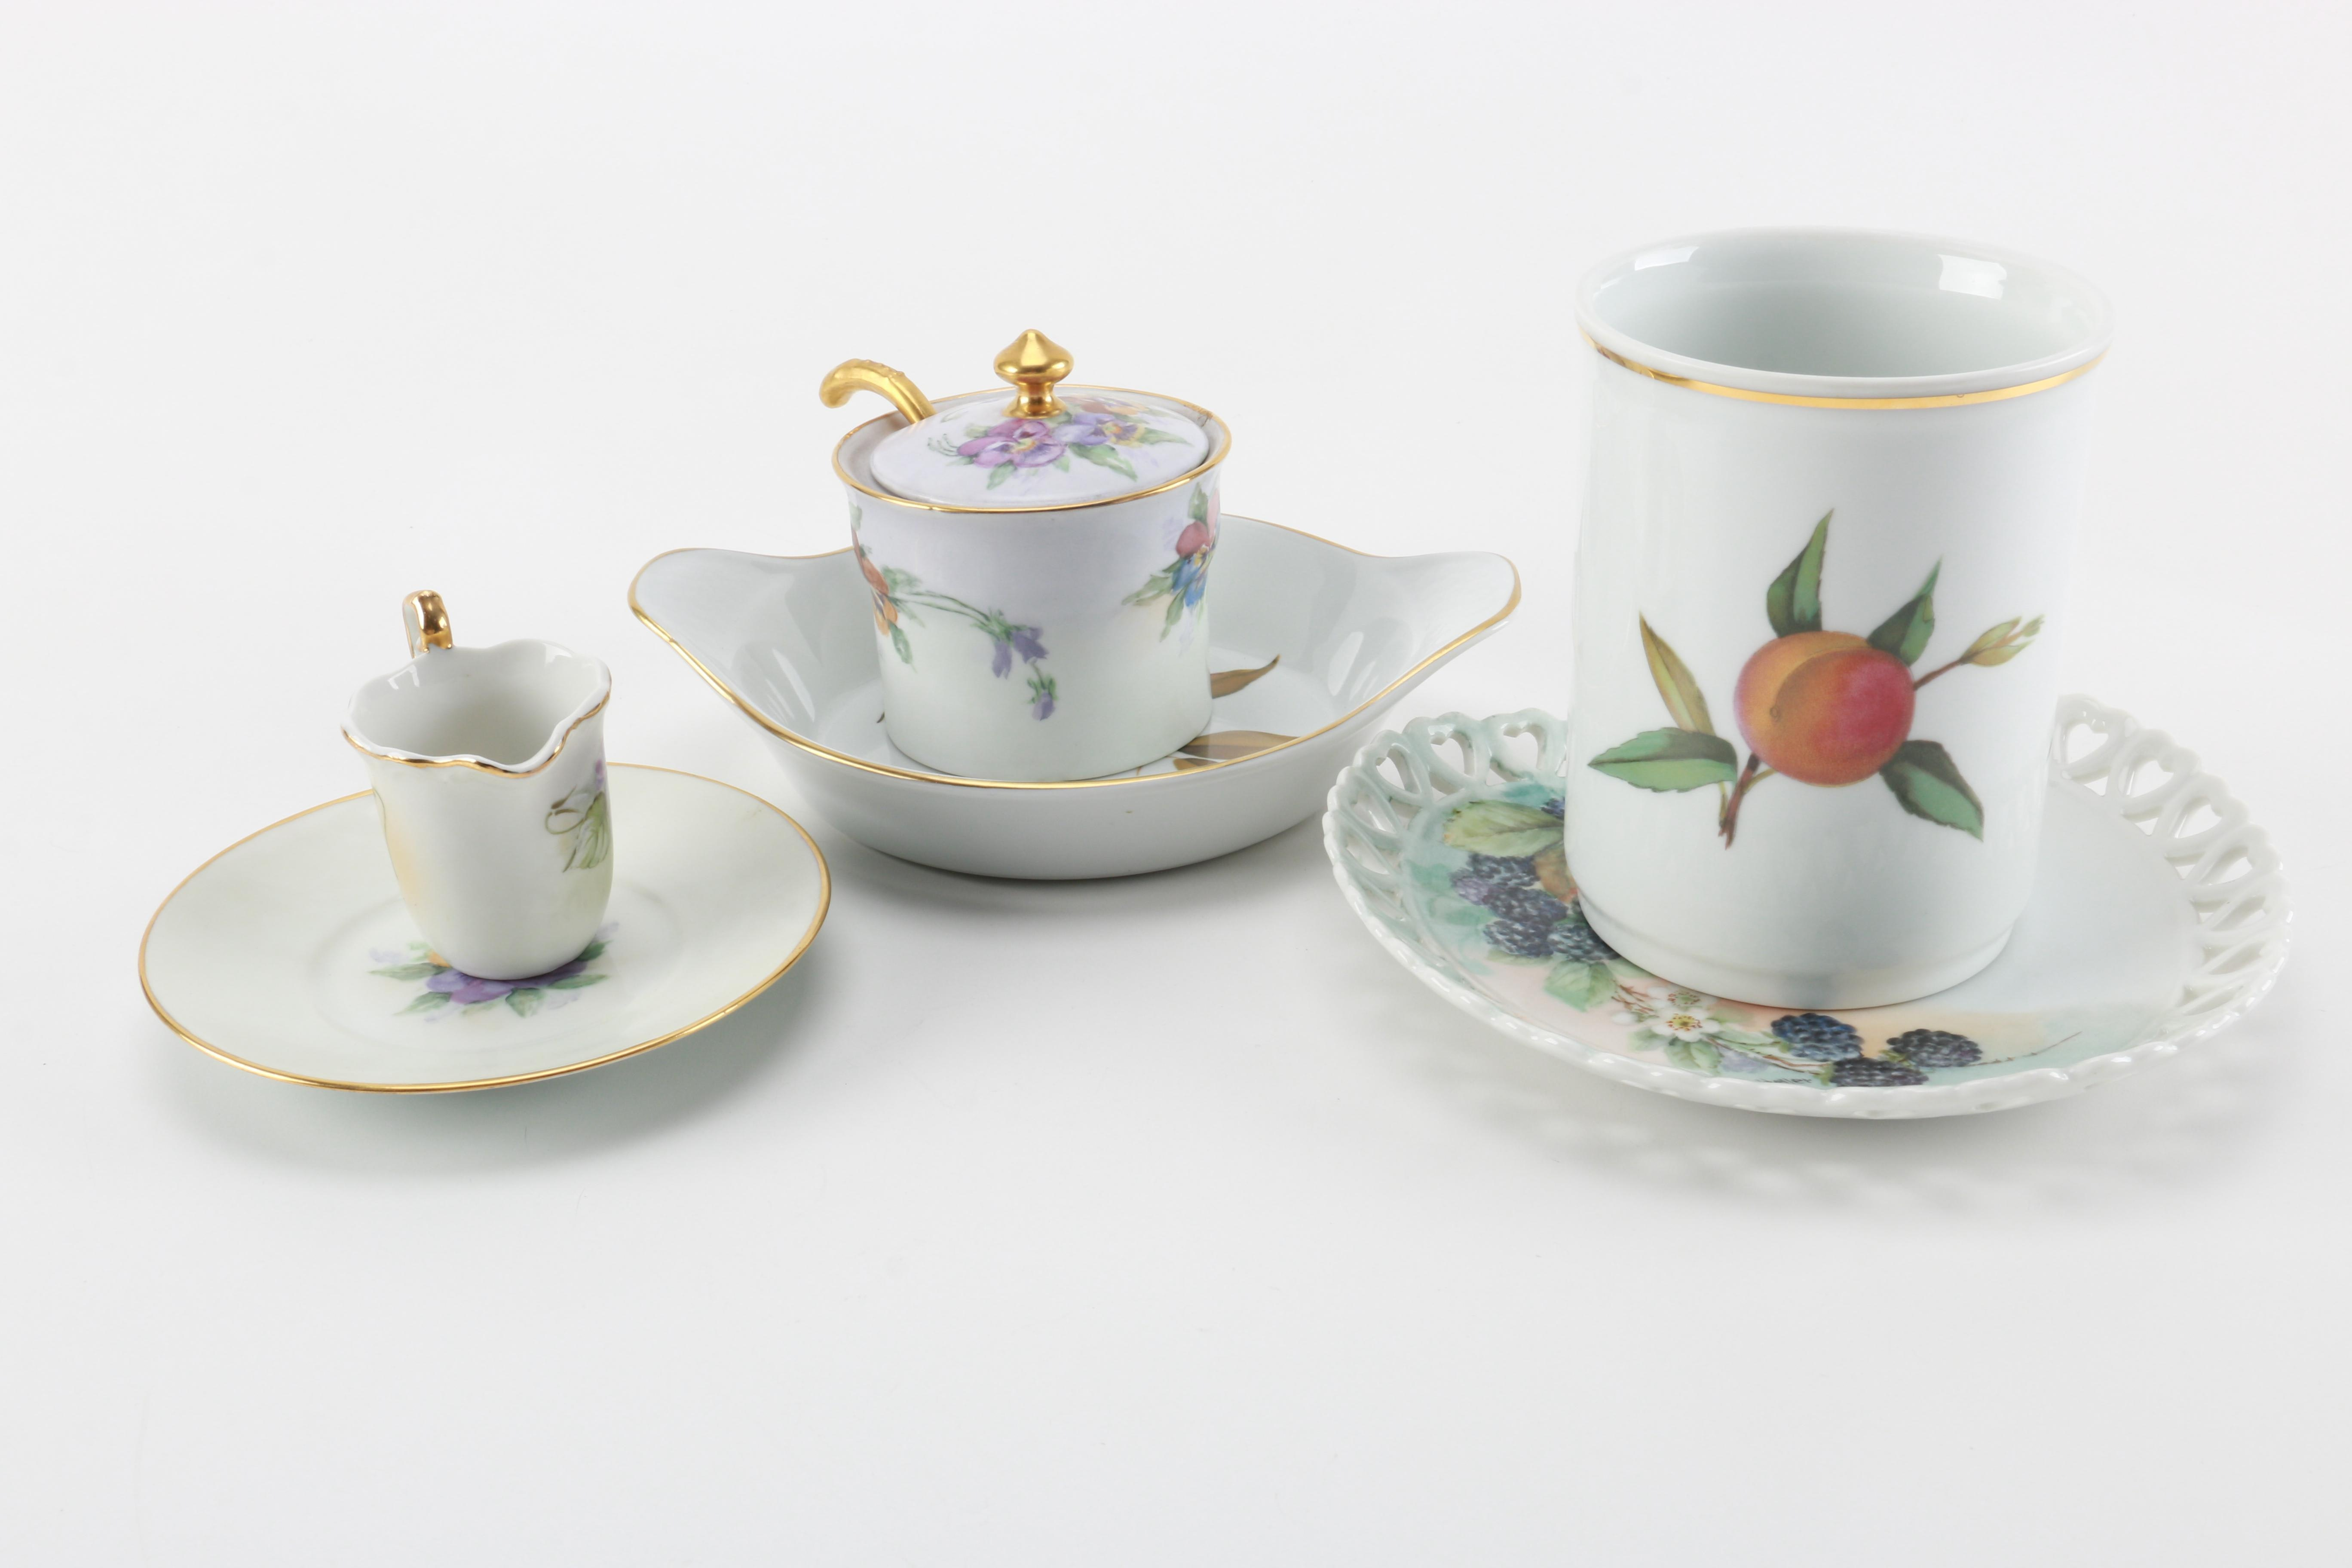 Porcelain Tableware Featuring Royal Worcester